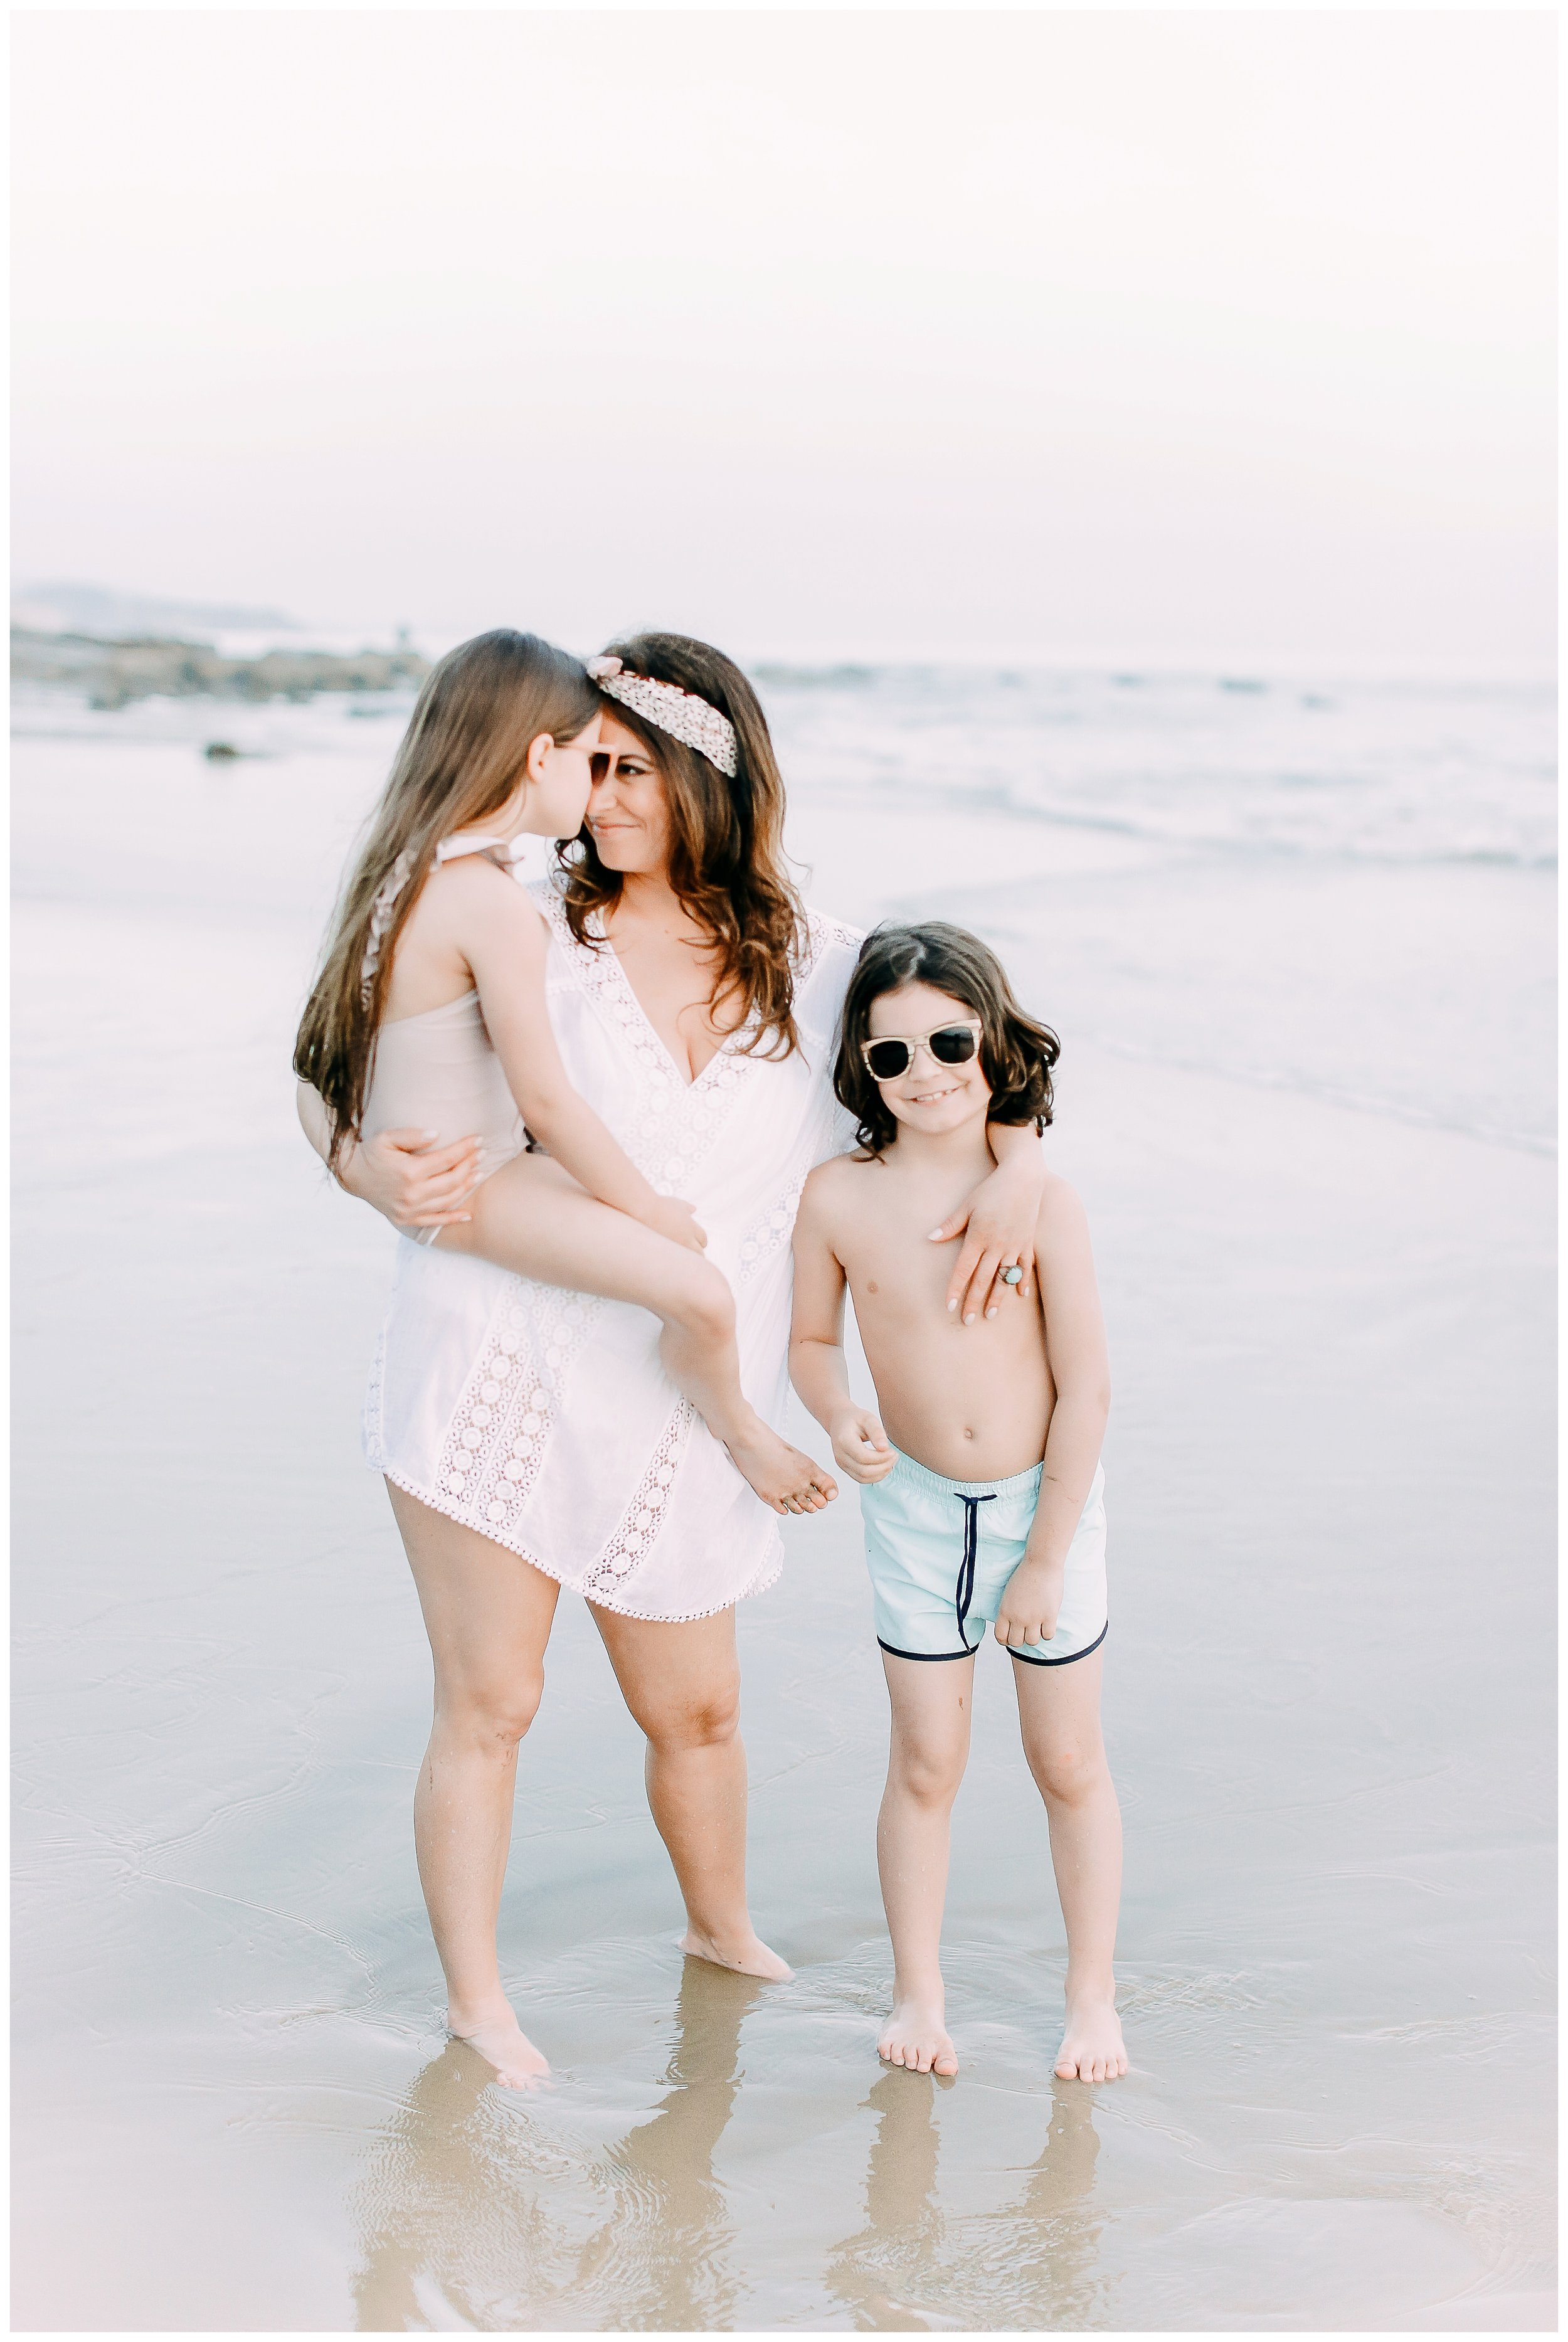 Crystal-Cove-State-Beach-Motherhood- Session-Crystal-Cove-Newport-Beach-Family-Photographer-Crystal-Cove-Minnow-Swim-Cori-Kleckner-Photography-Orange-County-Vacation-Family-Photos-Session-_0857.jpg